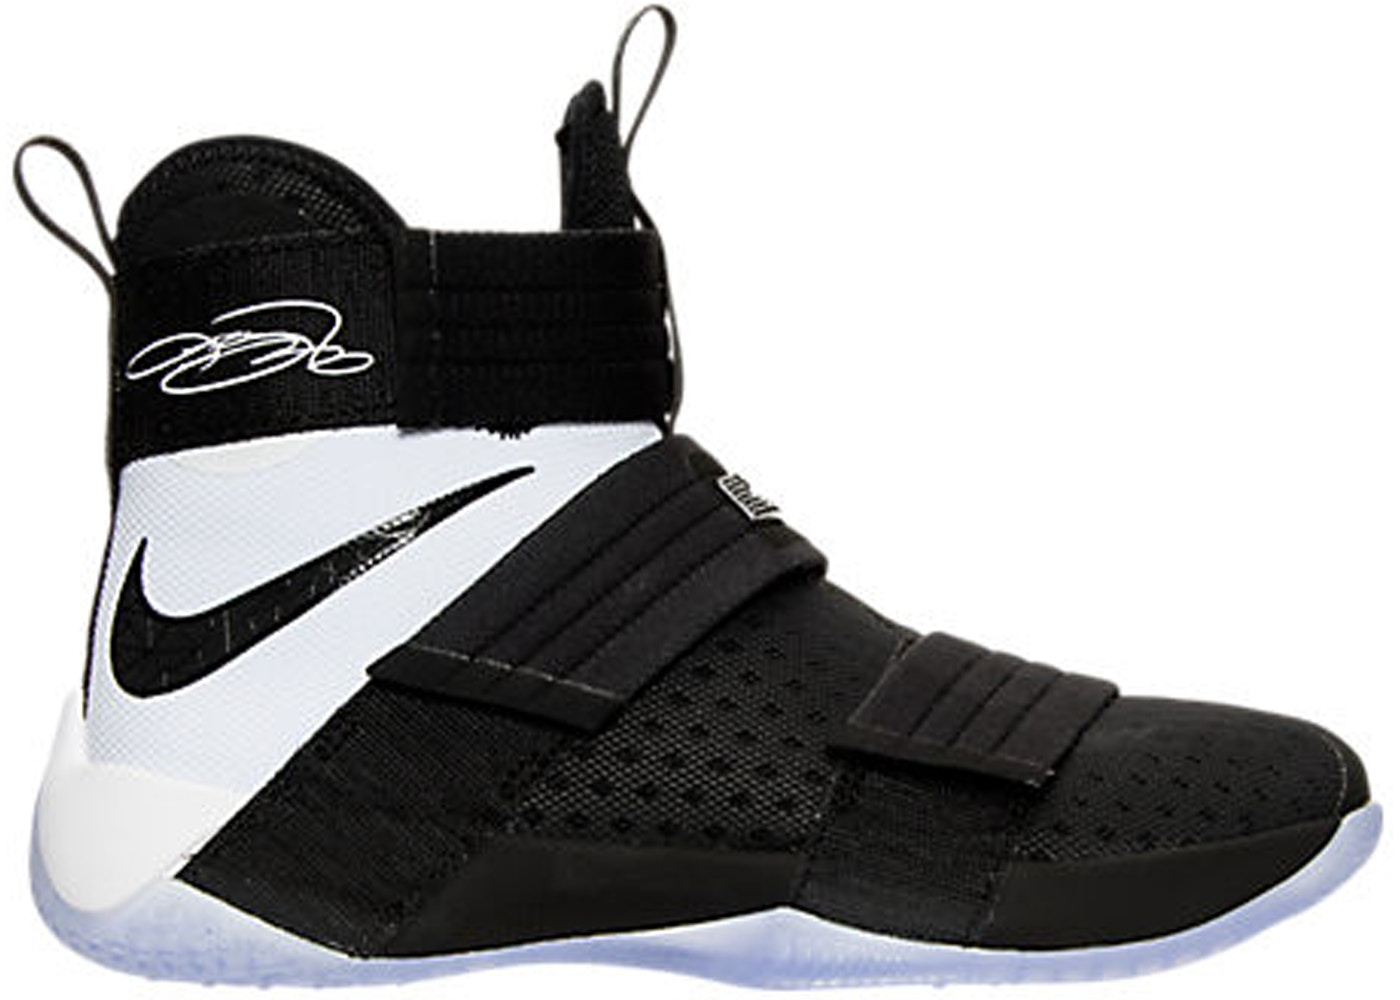 a52e2d31ee195 LeBron Zoom Soldier 10 Black White - 844378-001